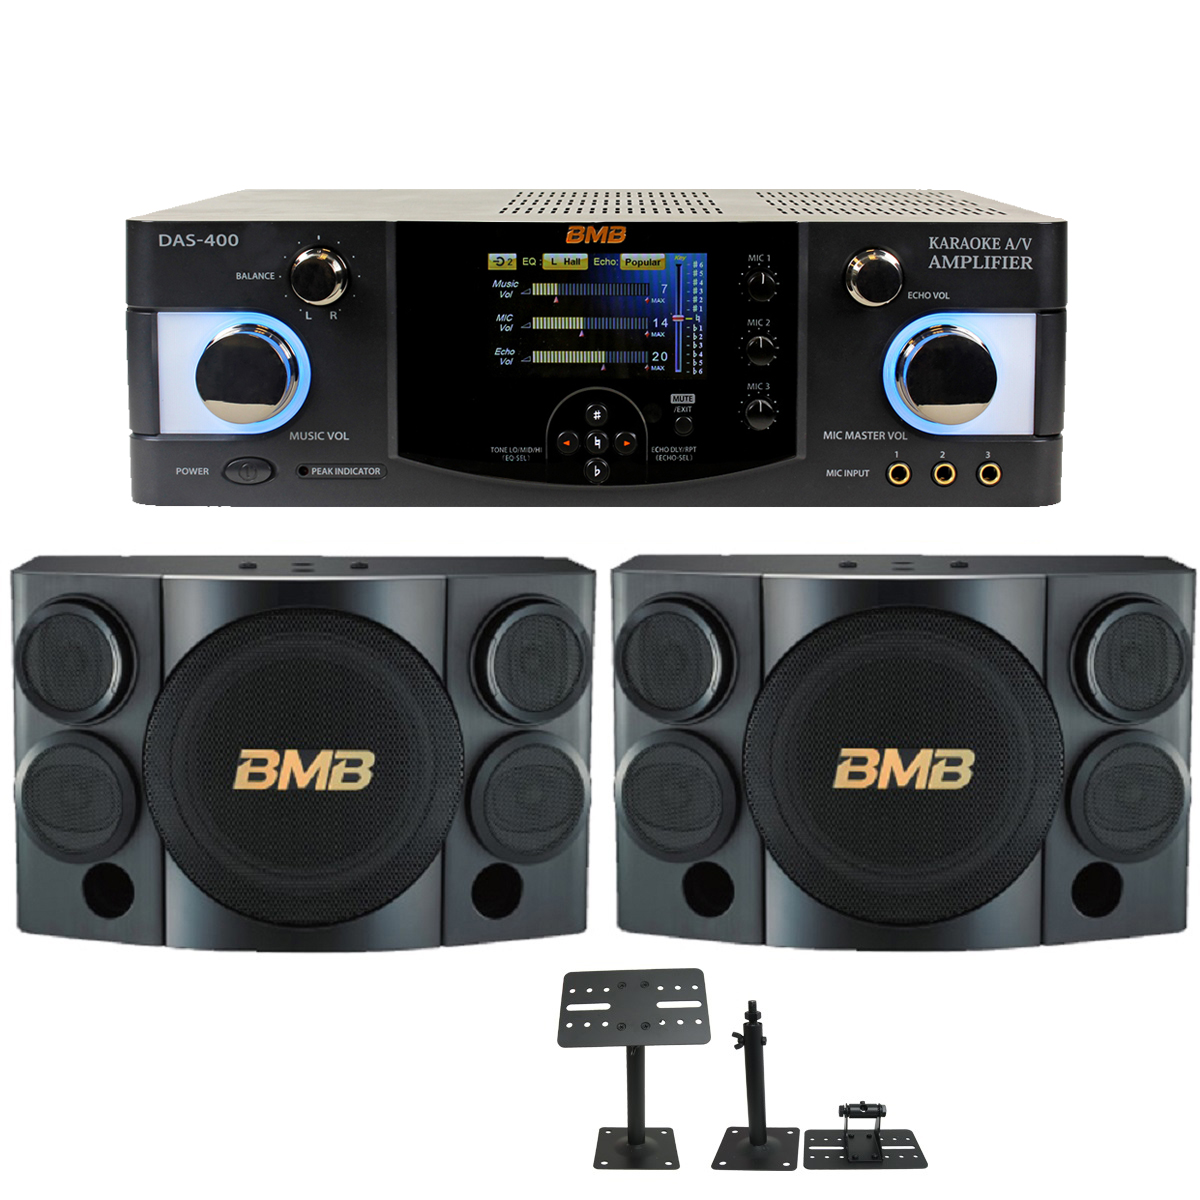 BMB CSE 310 With DAS 400 600 Watts Amplifier Speaker Cable Wall Mount